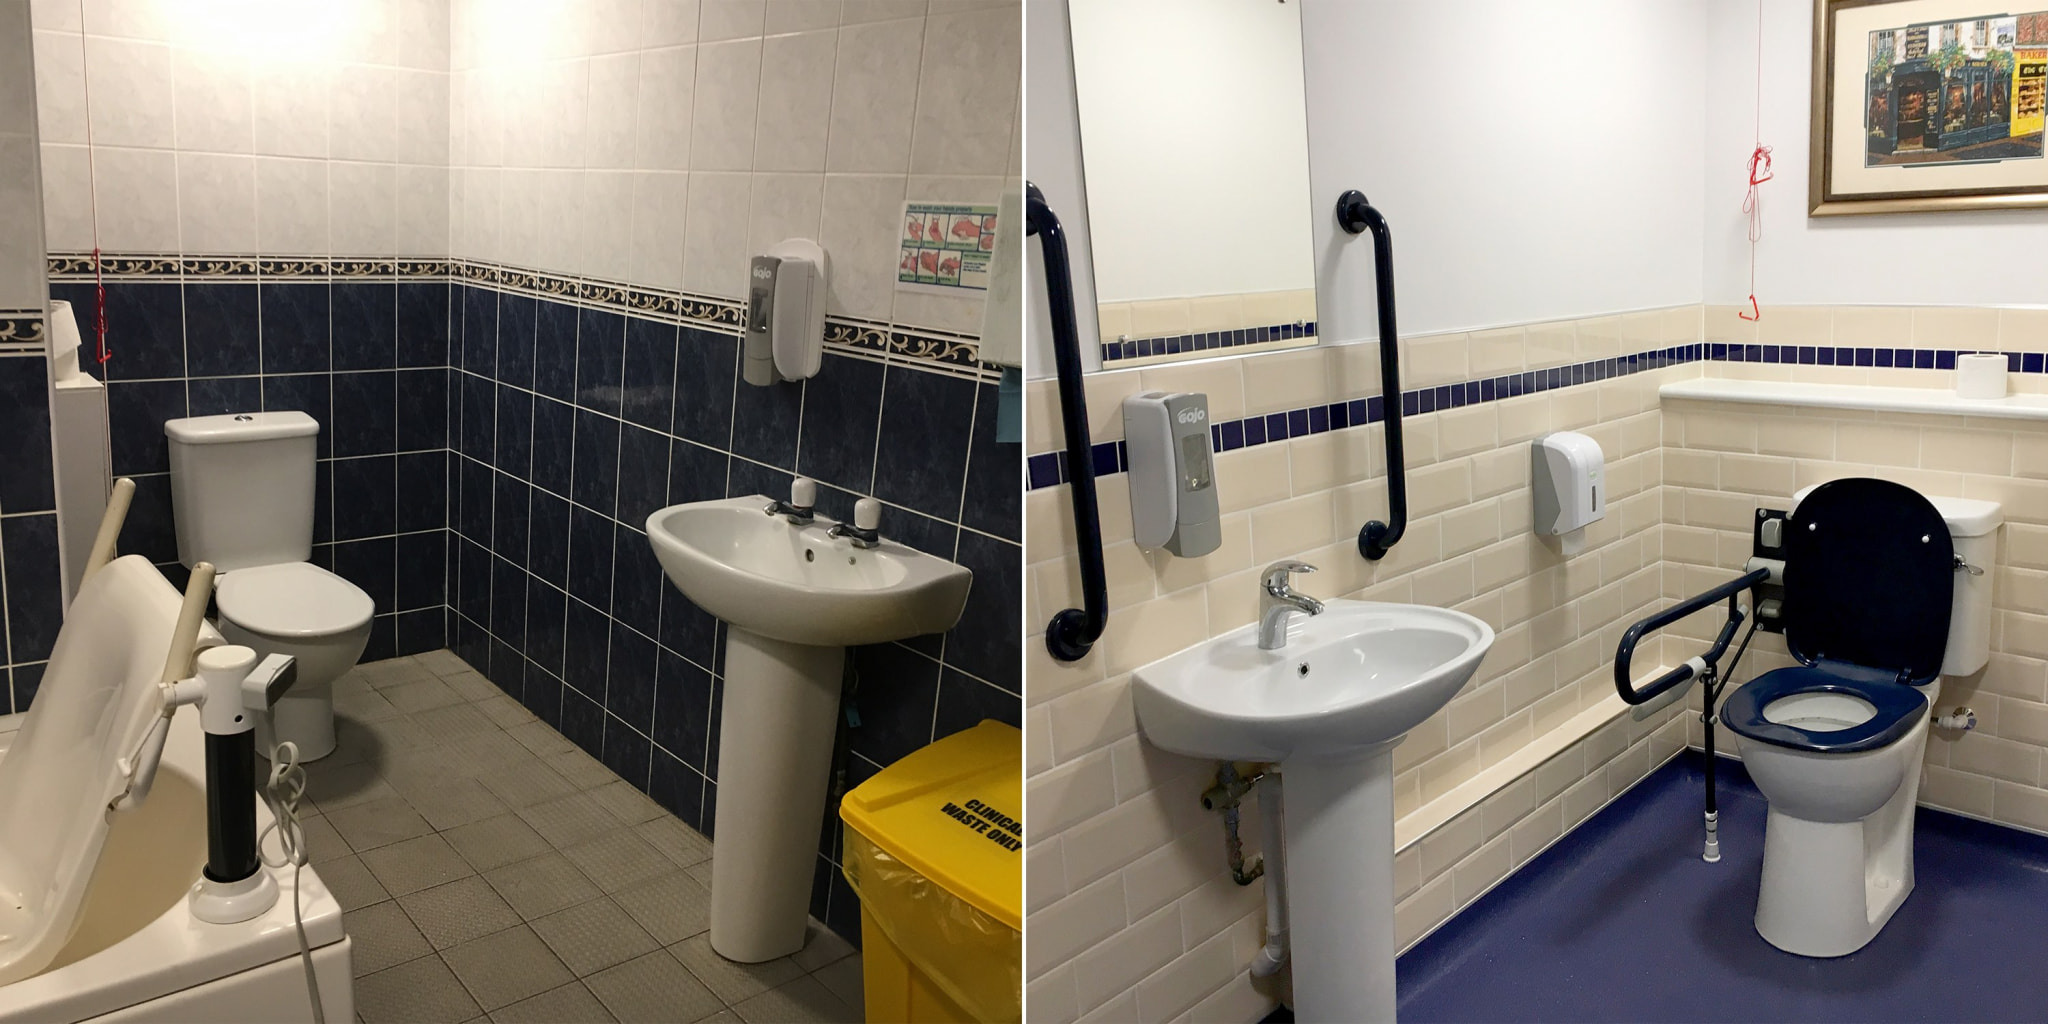 Before the refurbishment (left) and after the AKW refurbishment (right) (002)